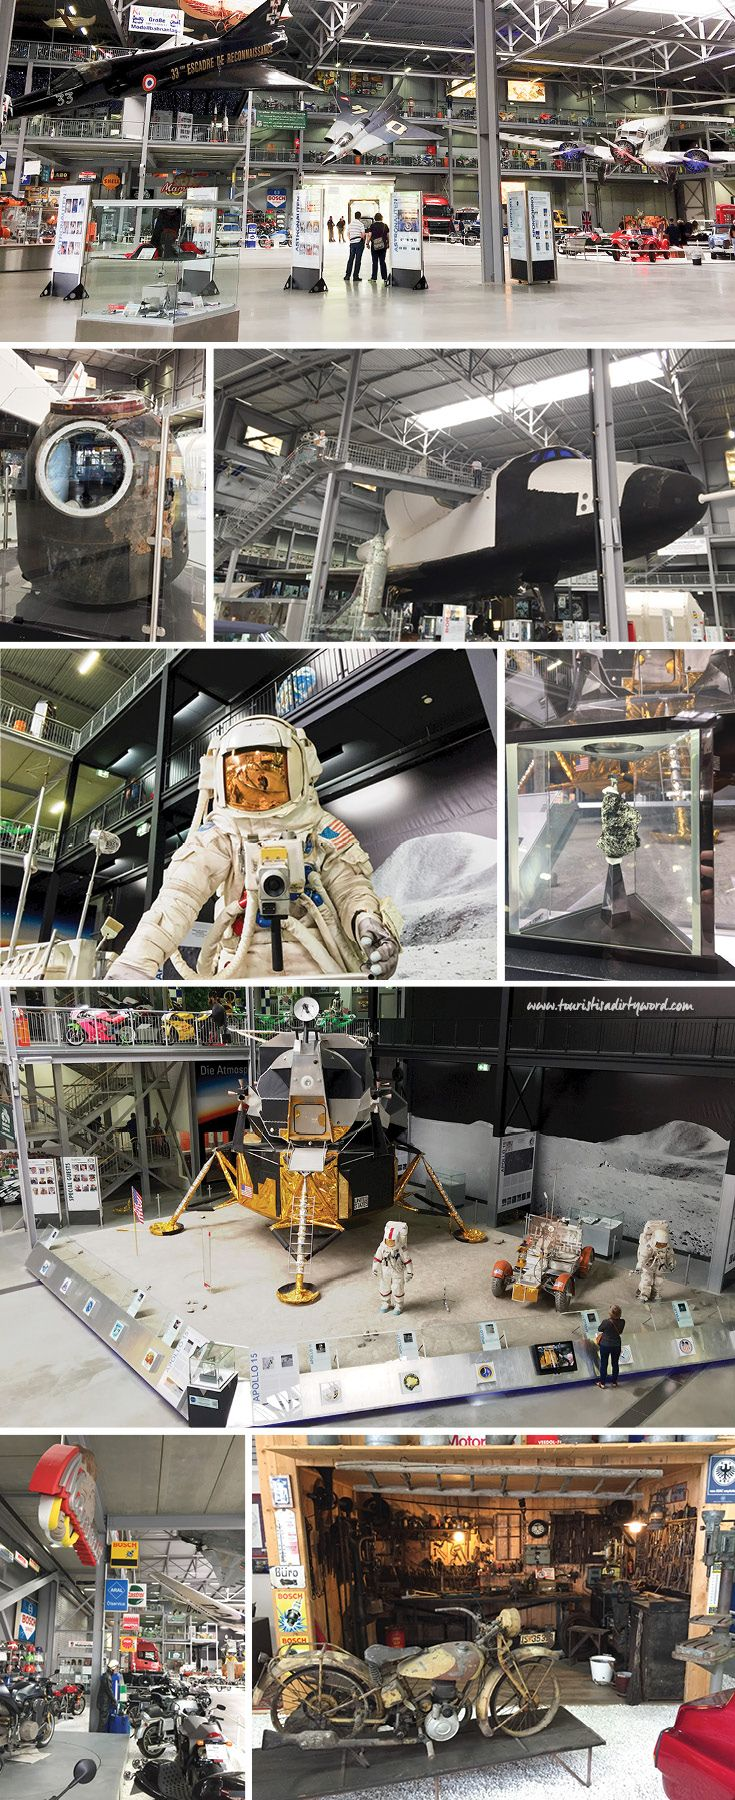 The Technik Museum in Speyer, Germany has a massive Space Exhibition Hall that includes an original space shuttle, BURAN